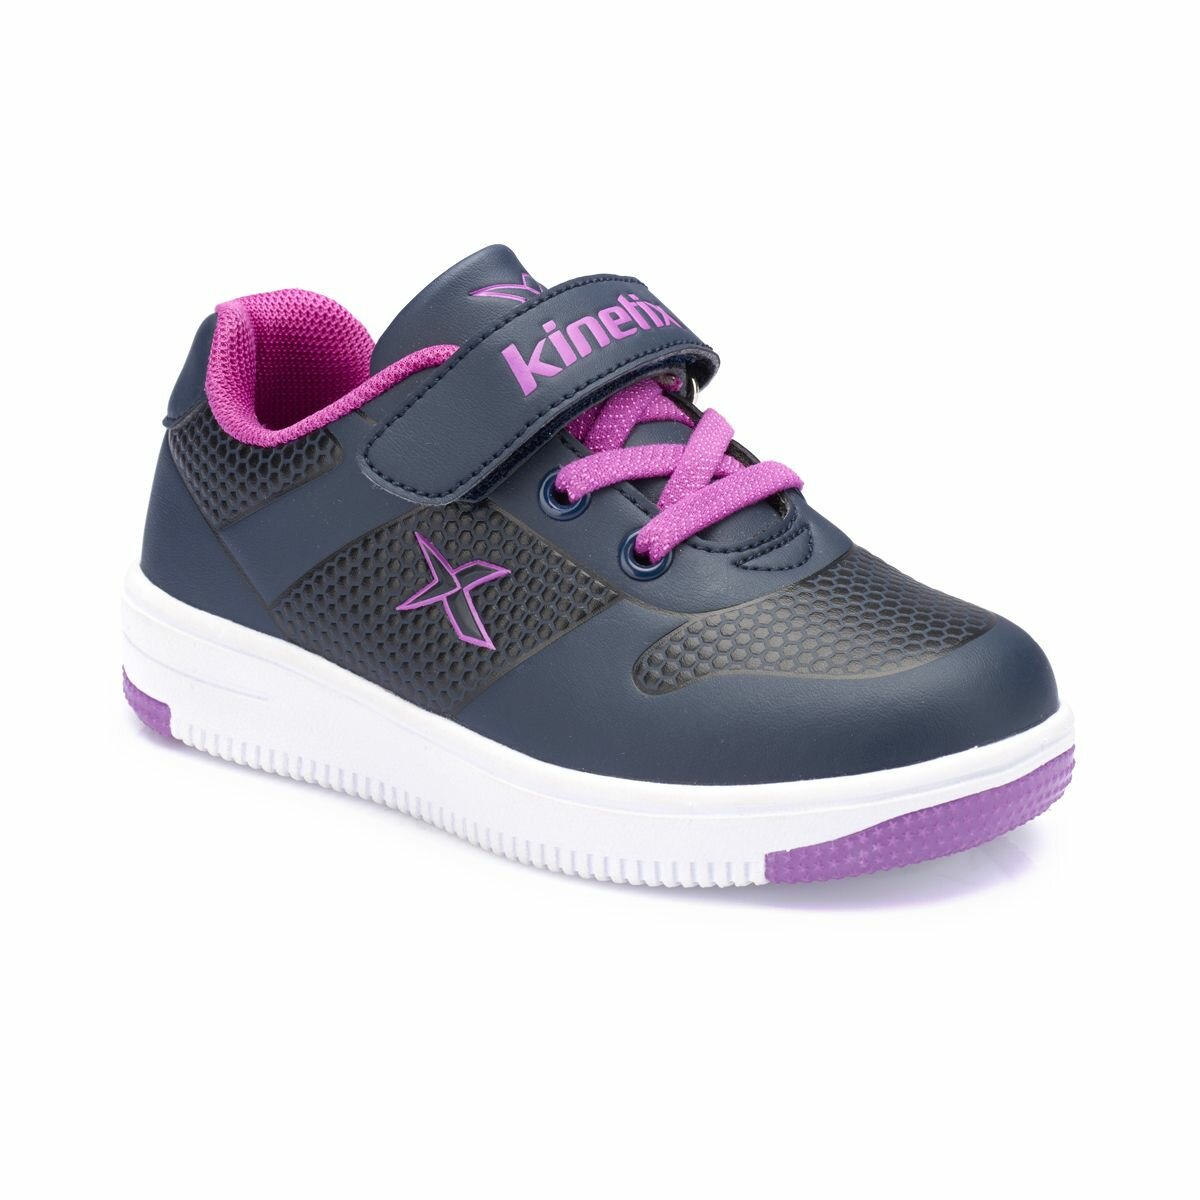 FLO DINRO Navy Blue Female Child Sneaker Shoes KINETIX